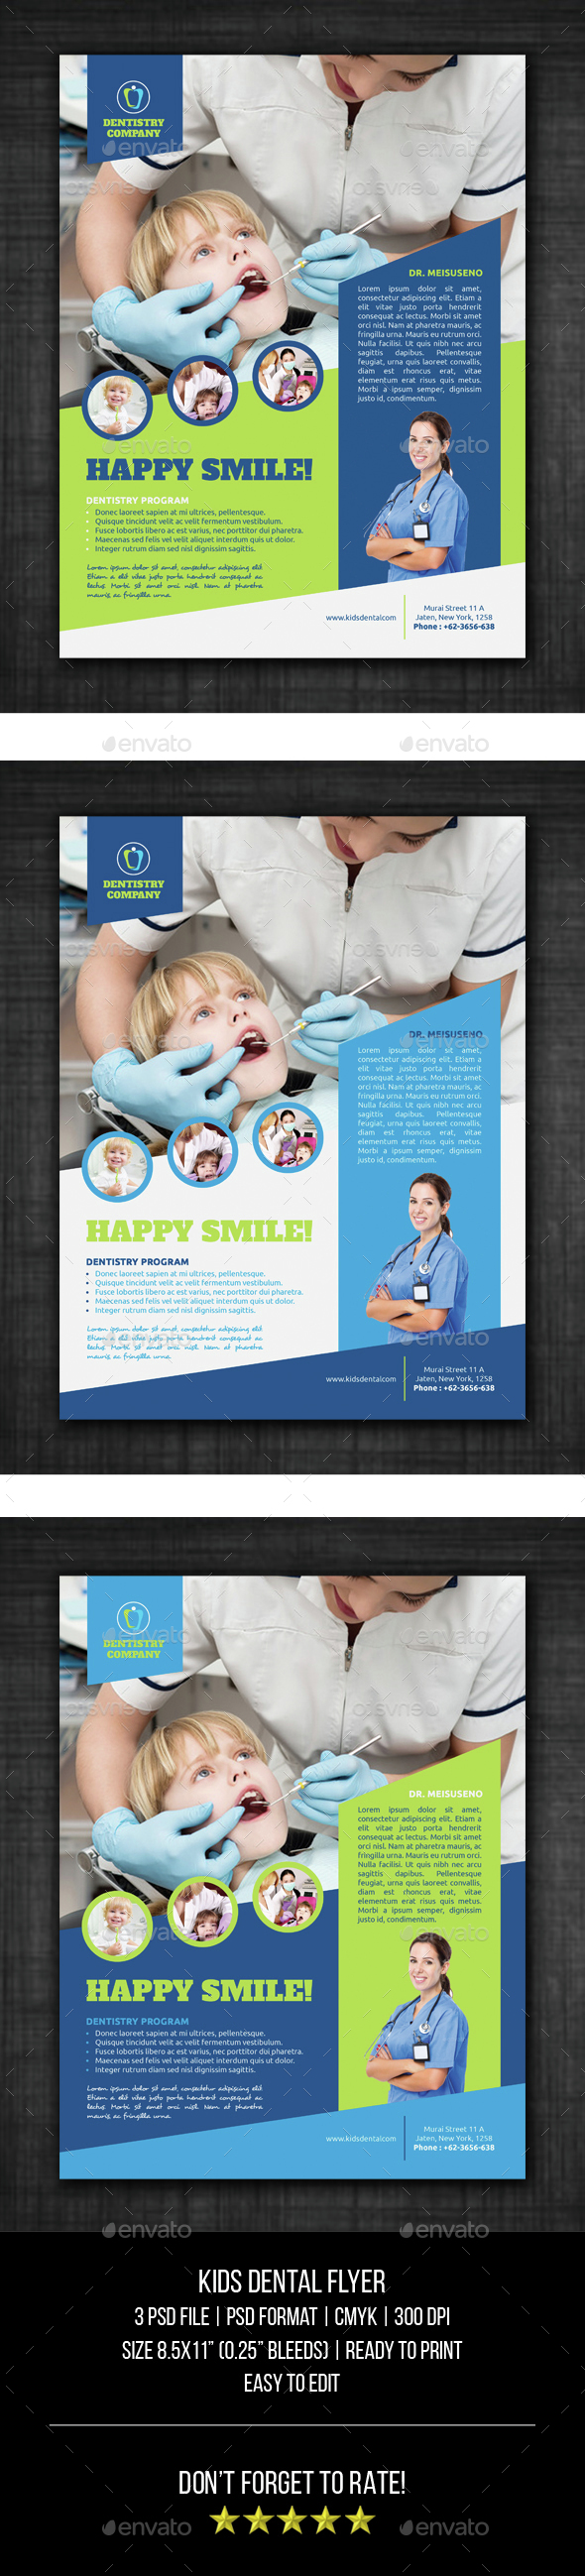 Kids Dental Flyer - Corporate Flyers